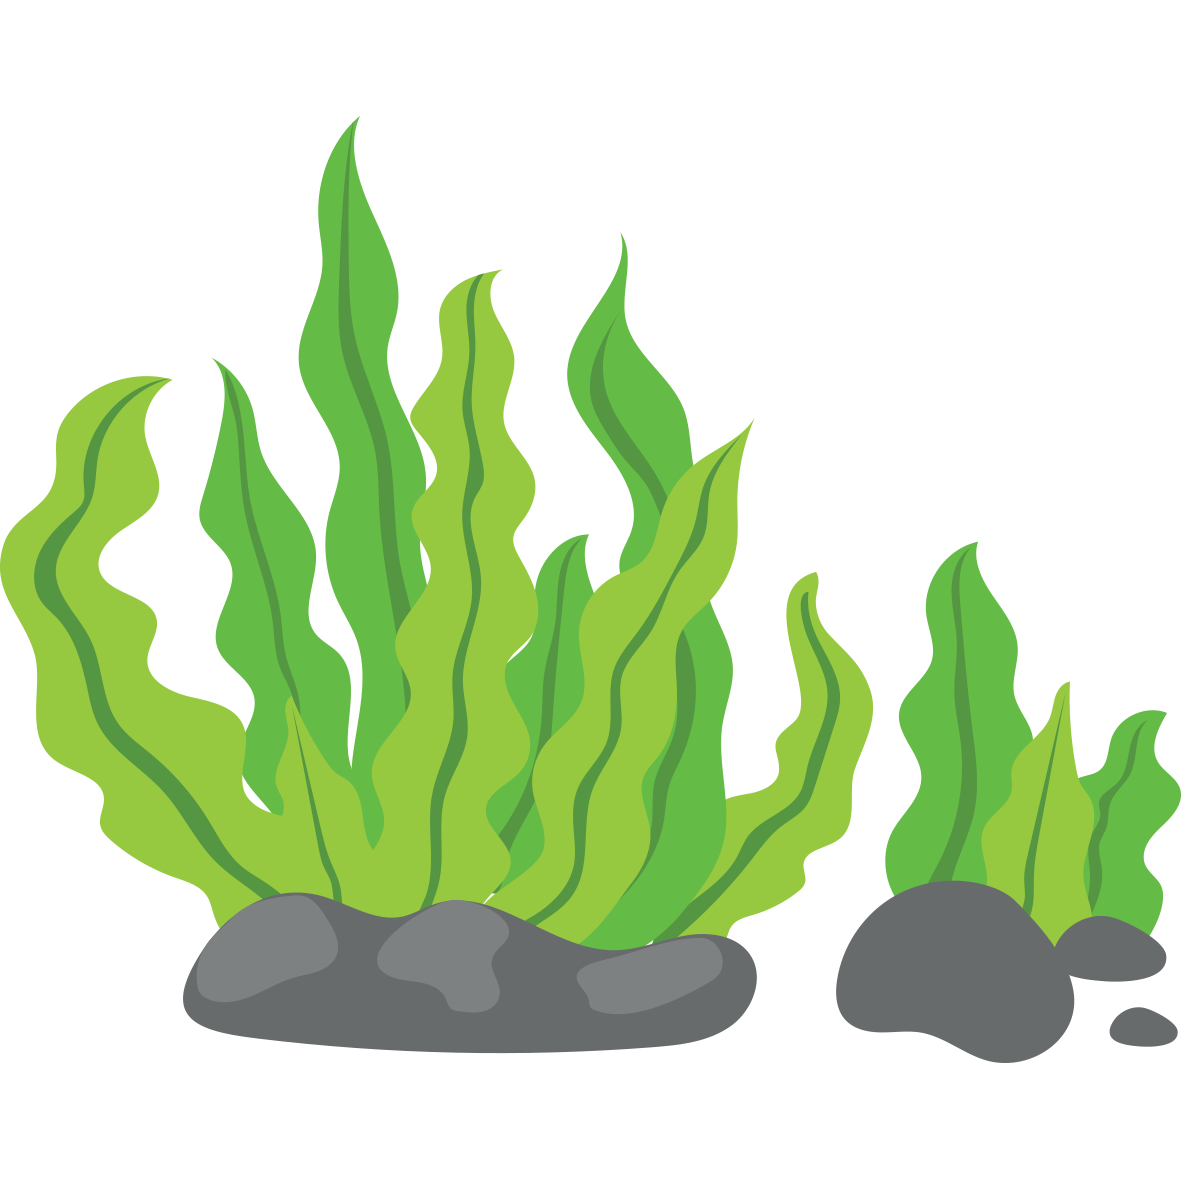 Seaweed clipart png. Clip art green background